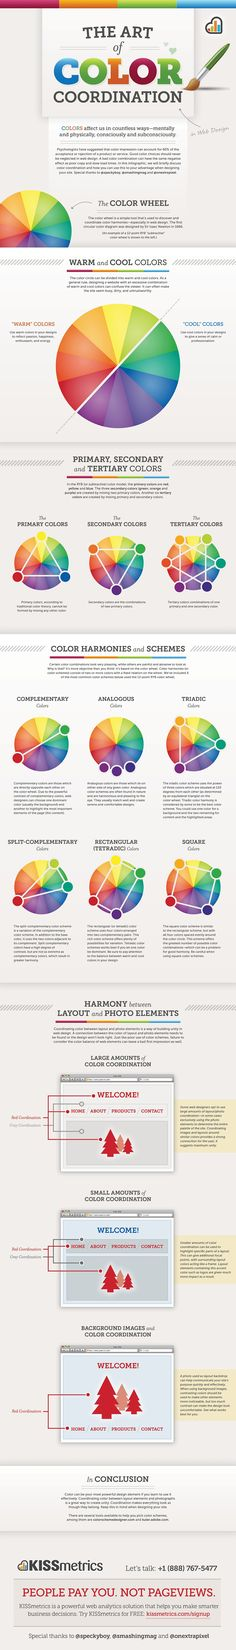 The Art of Colour Coordination